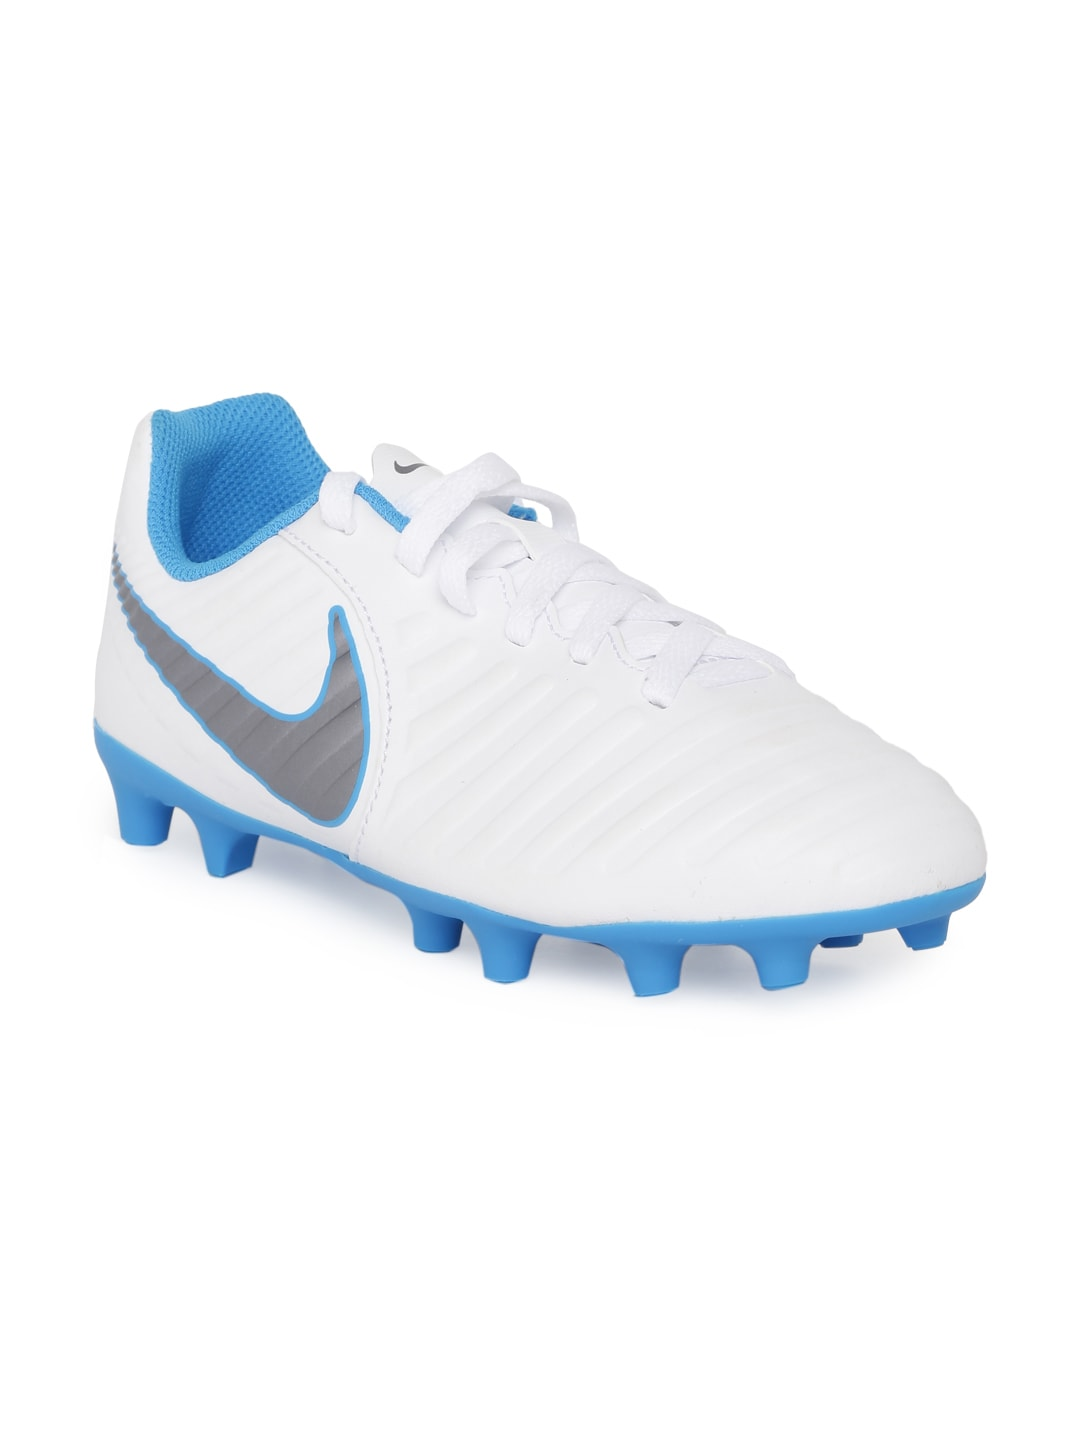 a09a22614 Nike In White Tops Sports Shoes - Buy Nike In White Tops Sports Shoes  online in India